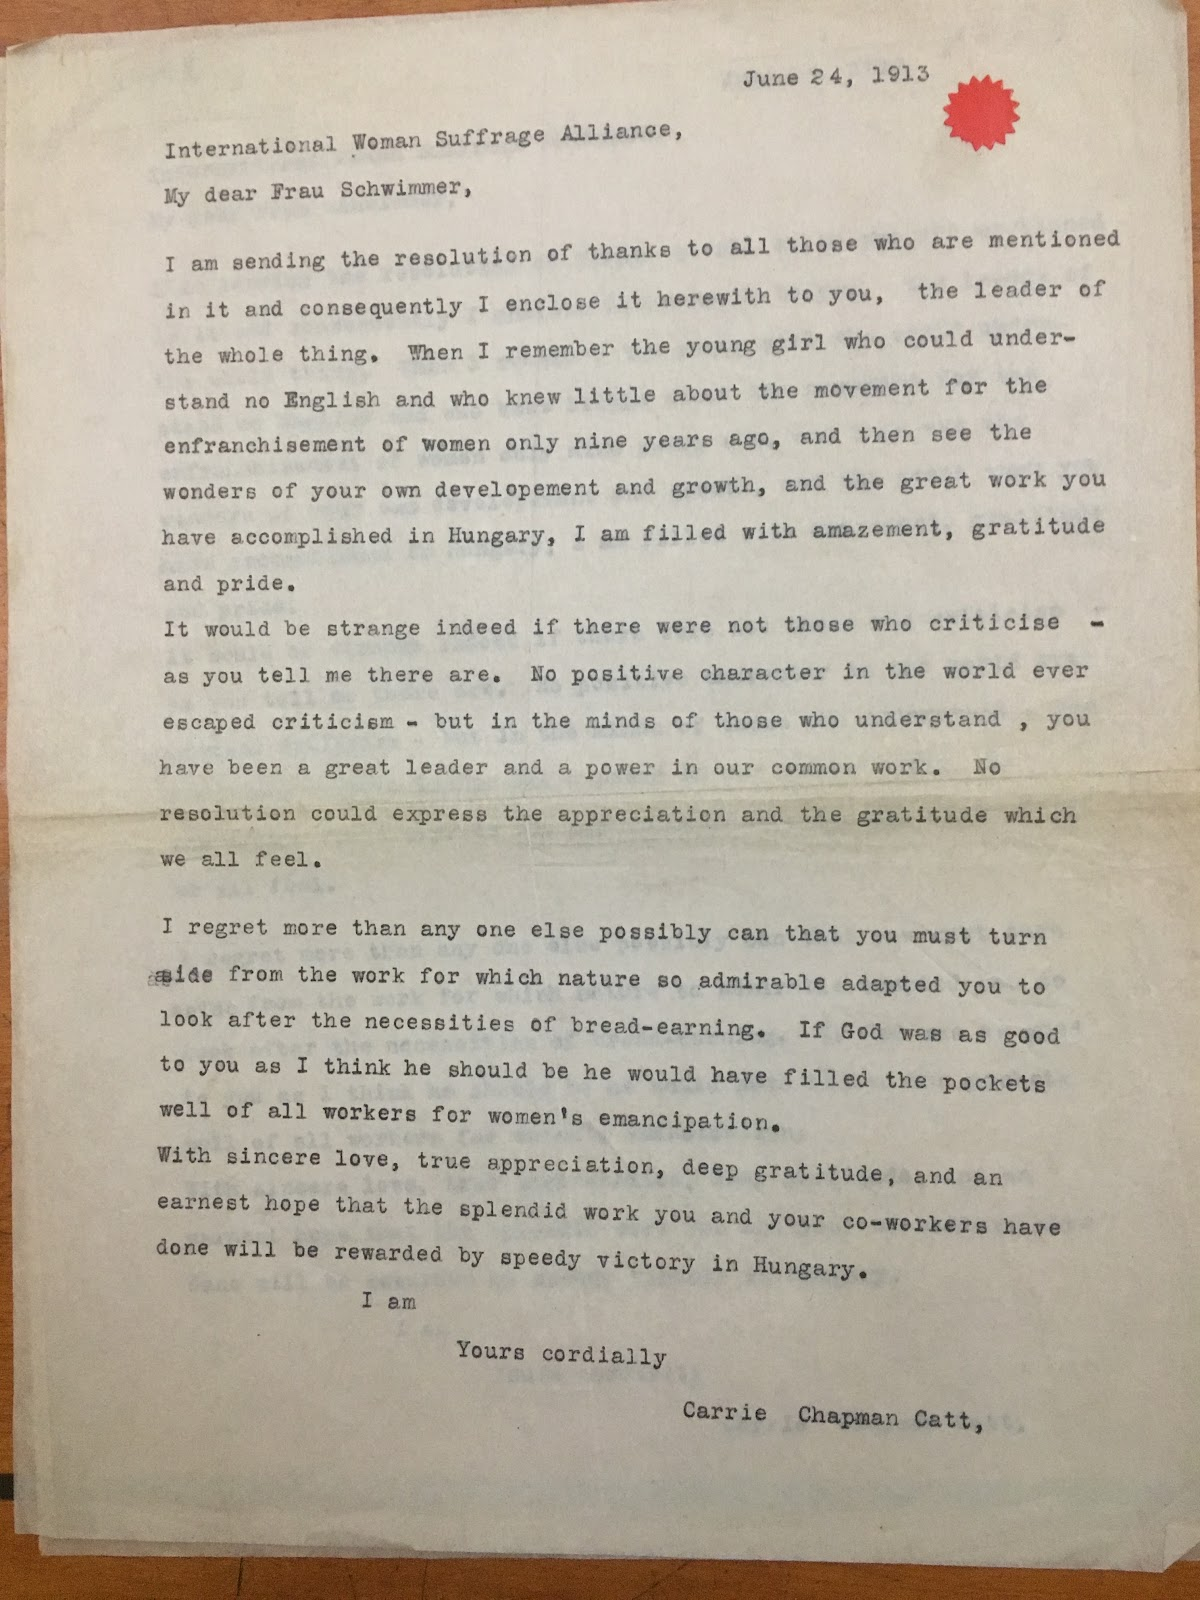 Letter from Carrie Chapman Catt to Rosika Schwimmer